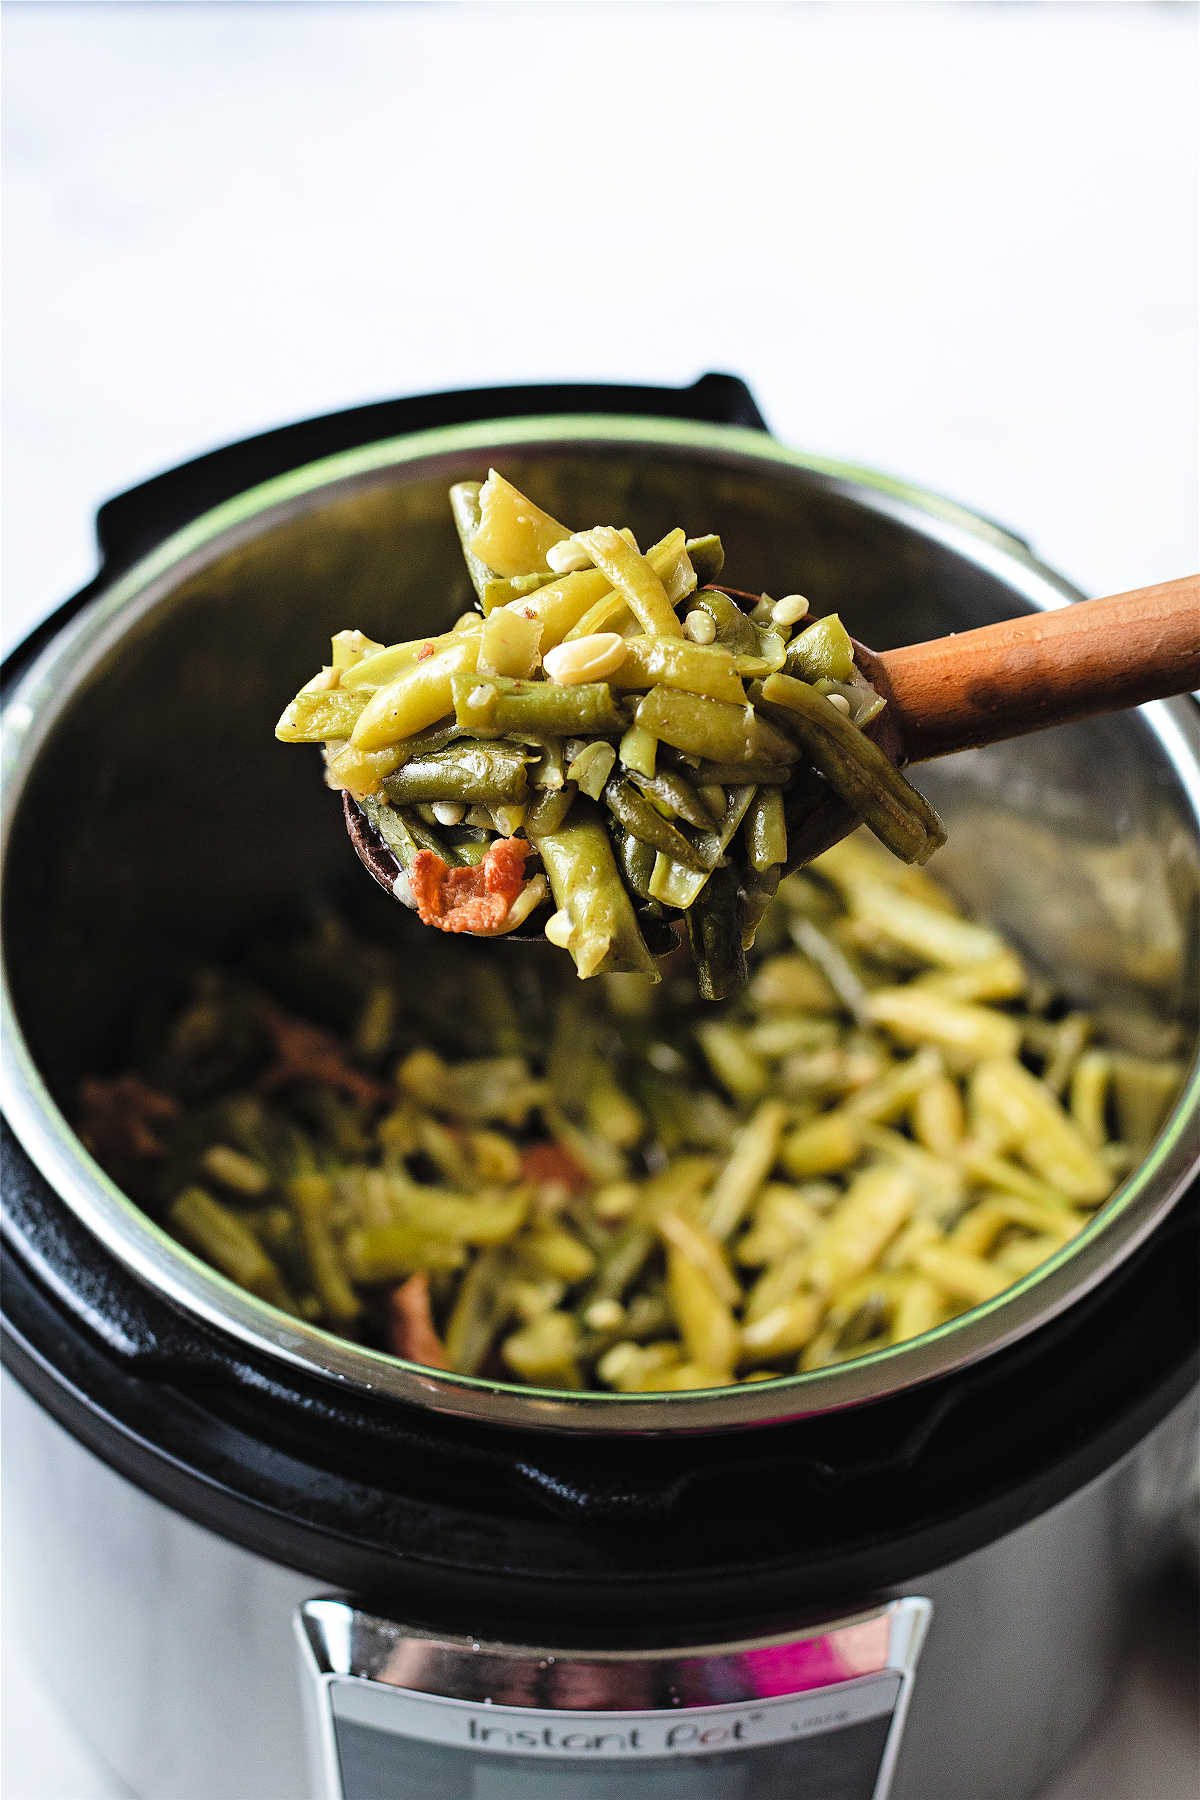 a wooden spoon lifting green beans out of an instant pot.